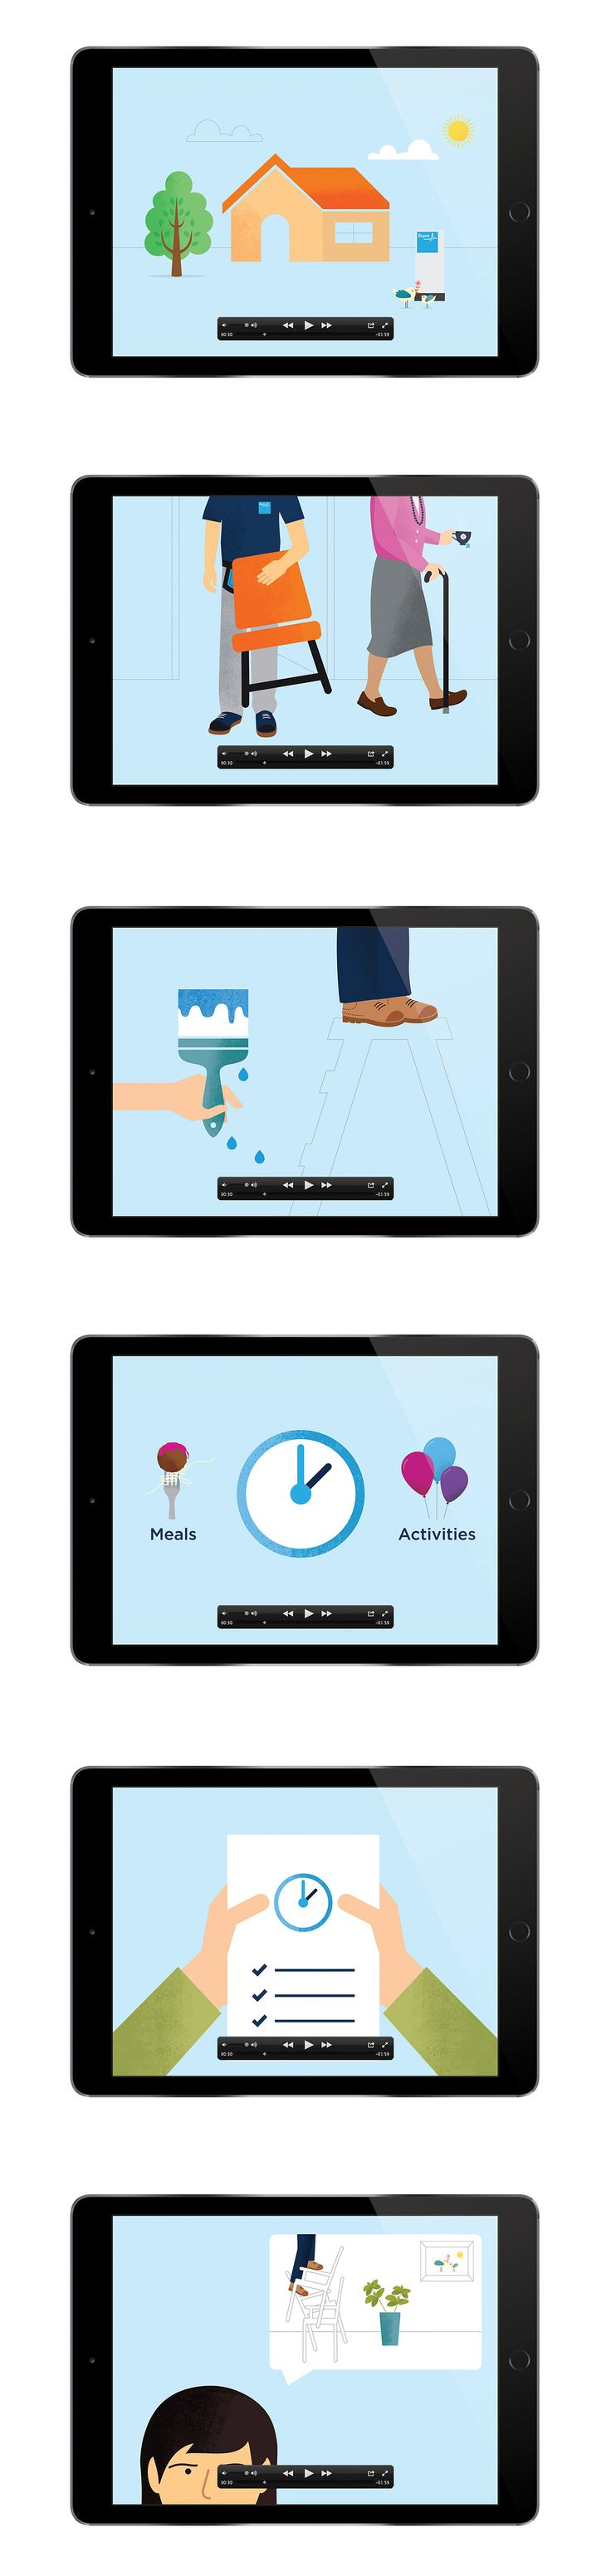 BUPA Aged Care by Ascender #brand #branding #identity #design #visual #graphic #logo #logotype #explainer #video #animation #motion #graphics #infographics #info #graphic #data #visualisation #BUPA #health #aged #care